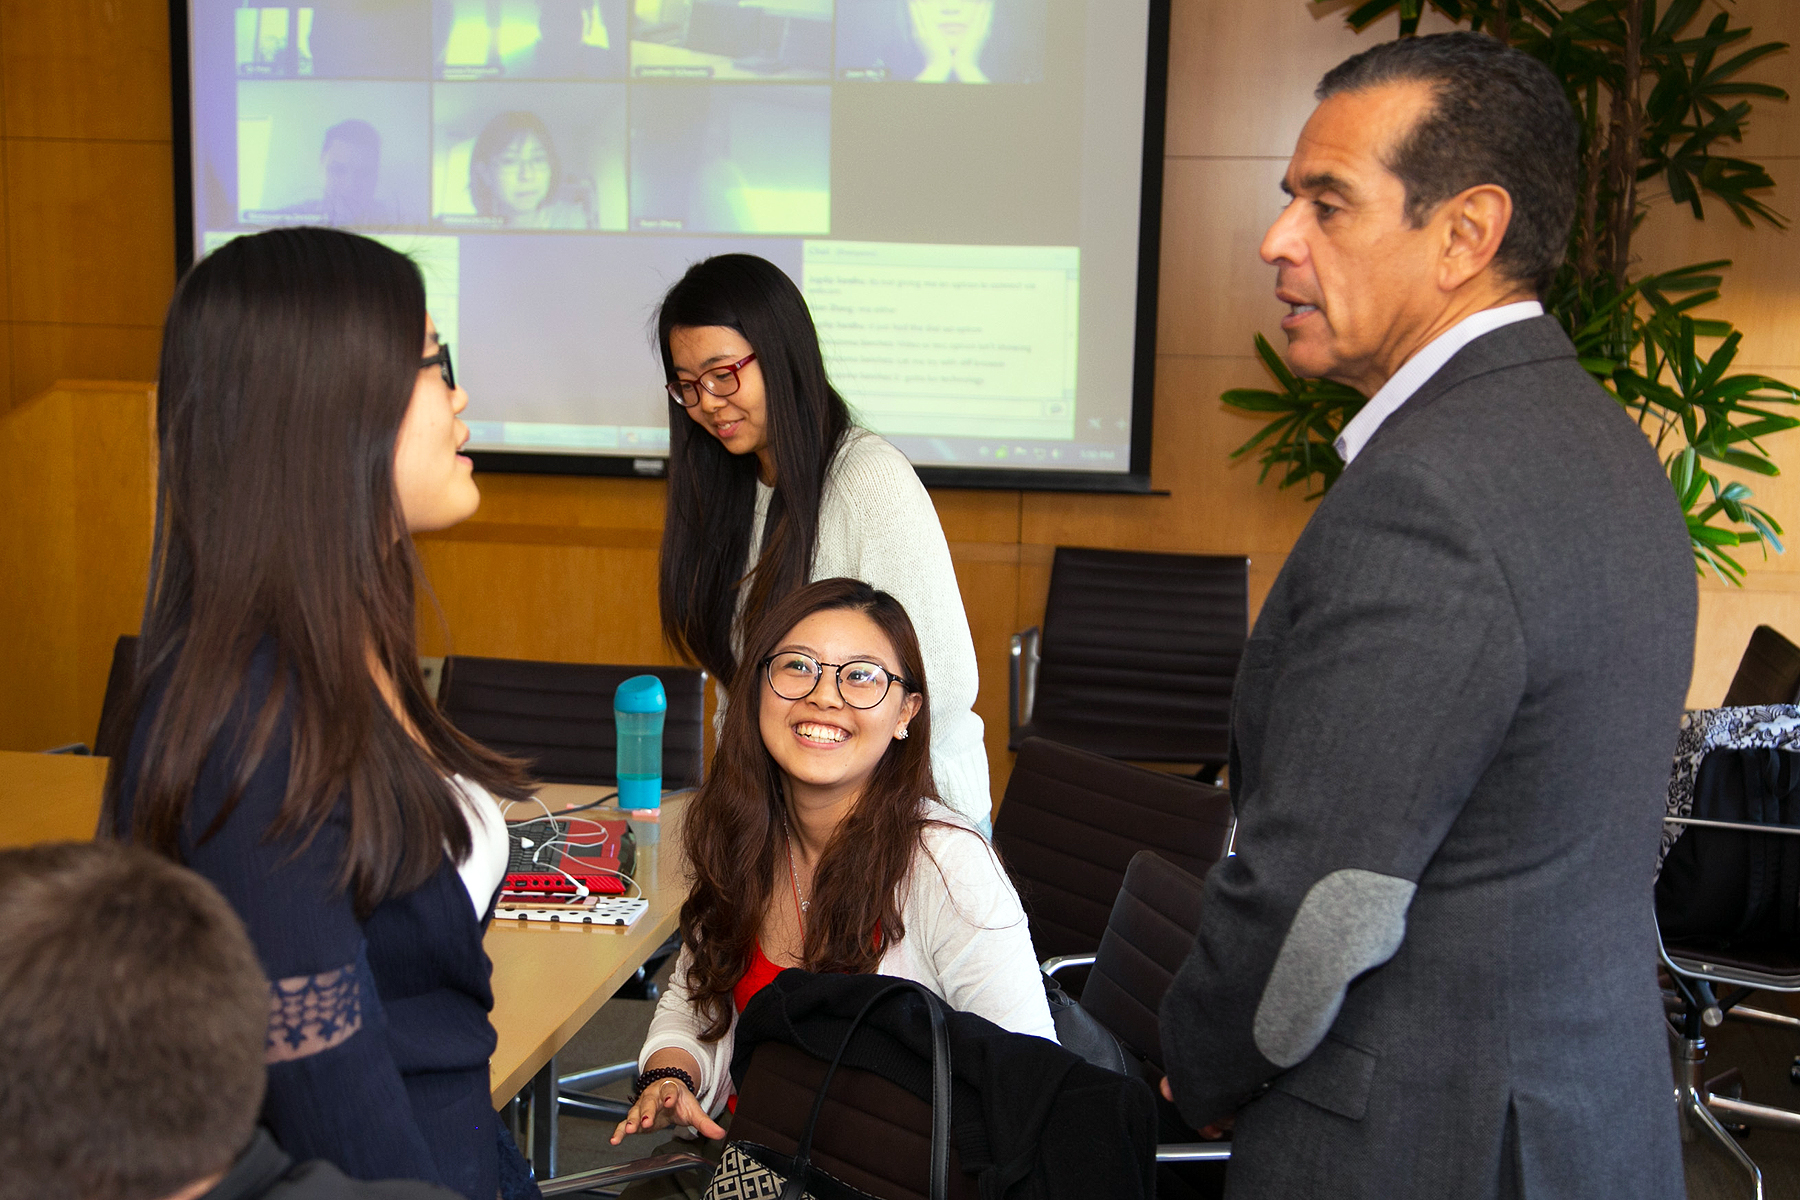 Villaraigosa meets with students at USC while online students in Sacramento join via a webcast. (Photo/Tom Queally)